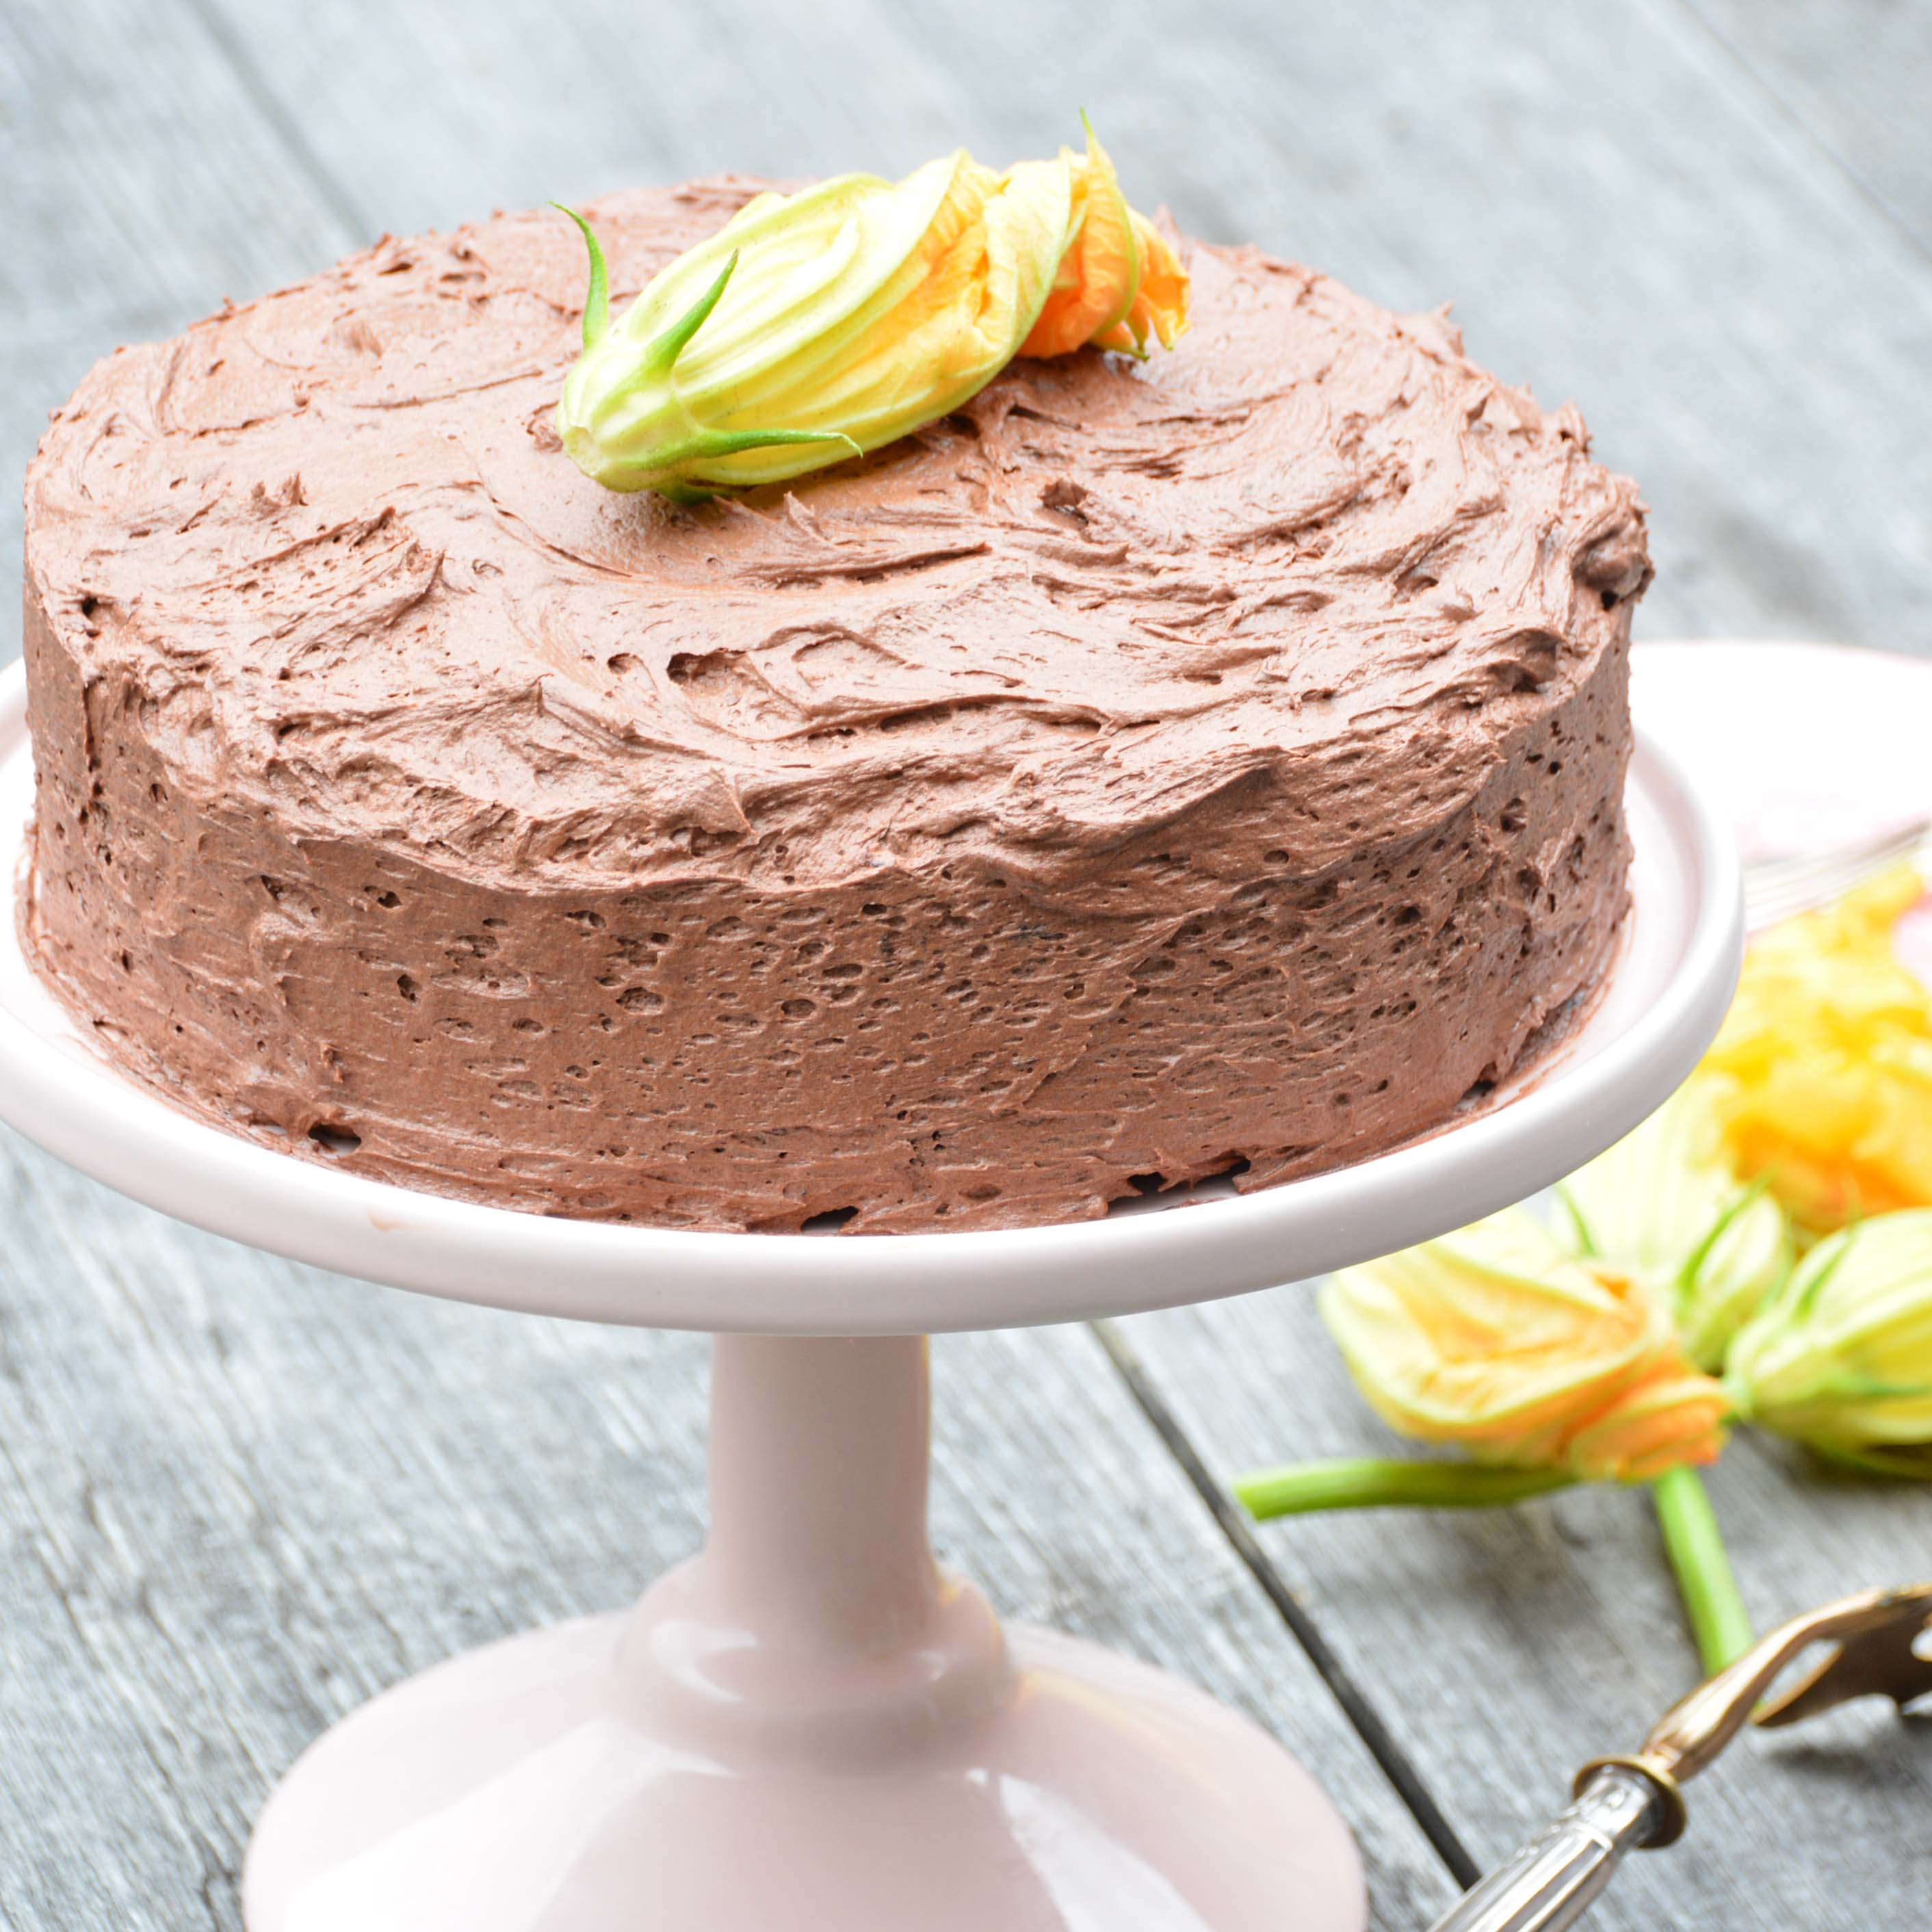 zucchini chocolate cake GF-italy on my mind-foodgawker